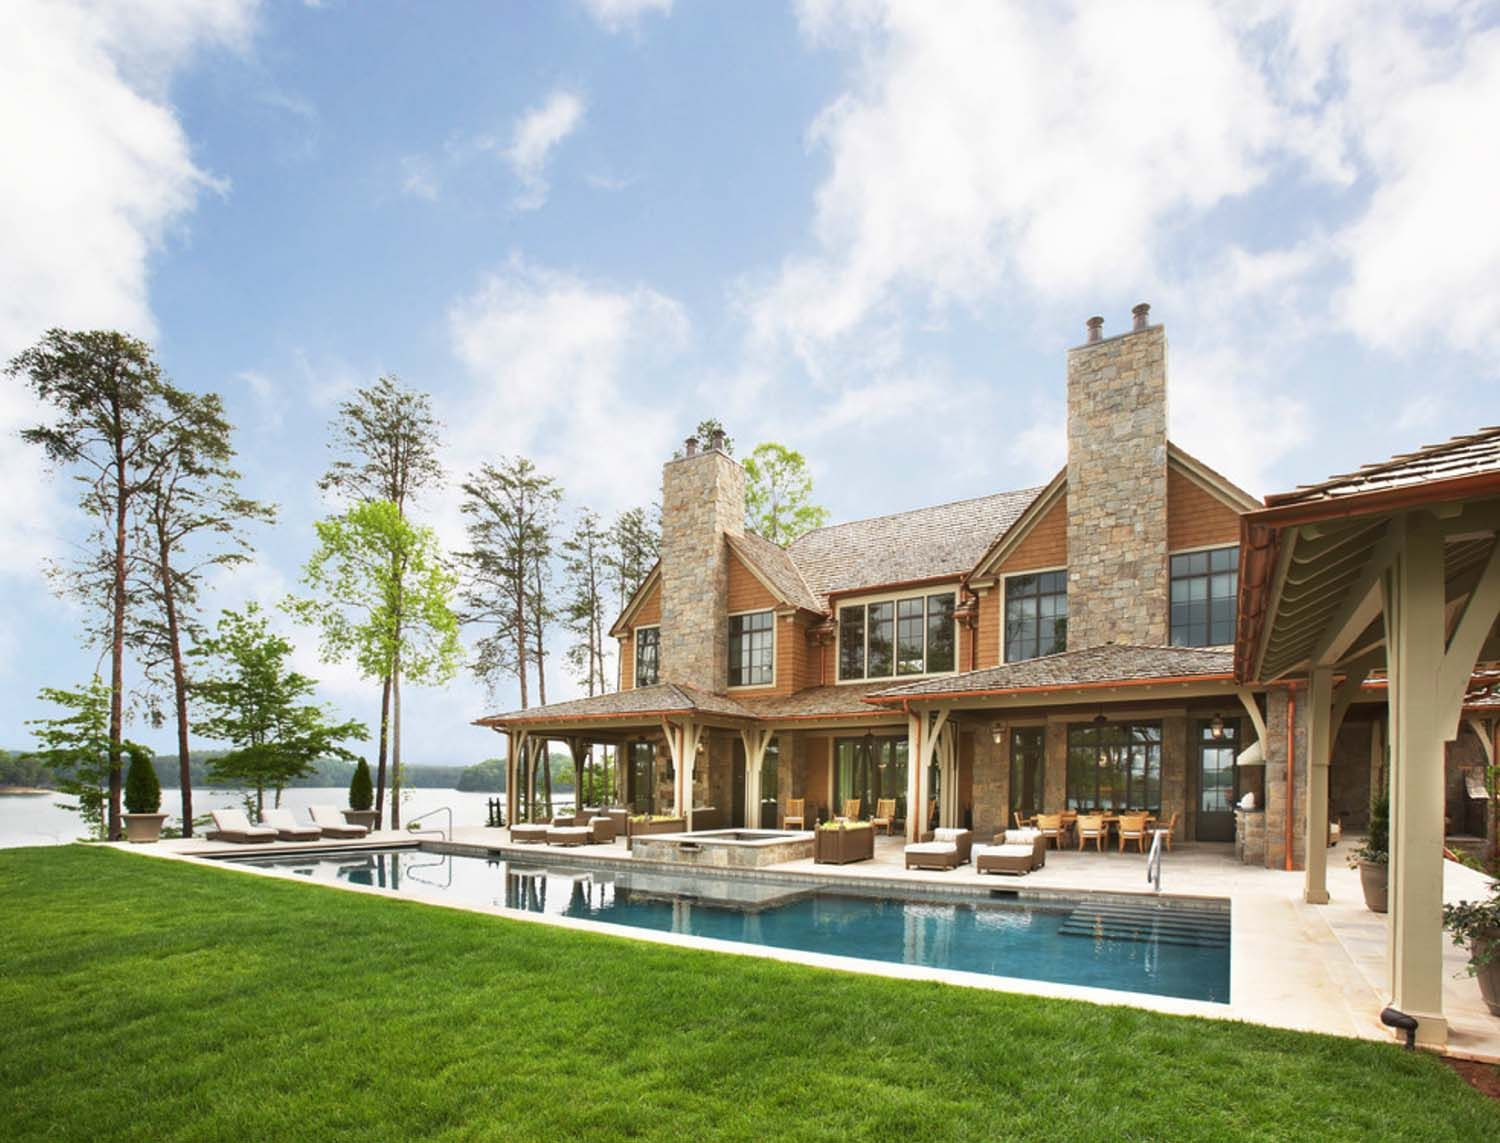 Breathtaking Waterfront House On Lake Keowee Inspires Tranquility Waterfront Homes Beautiful Homes Lake House